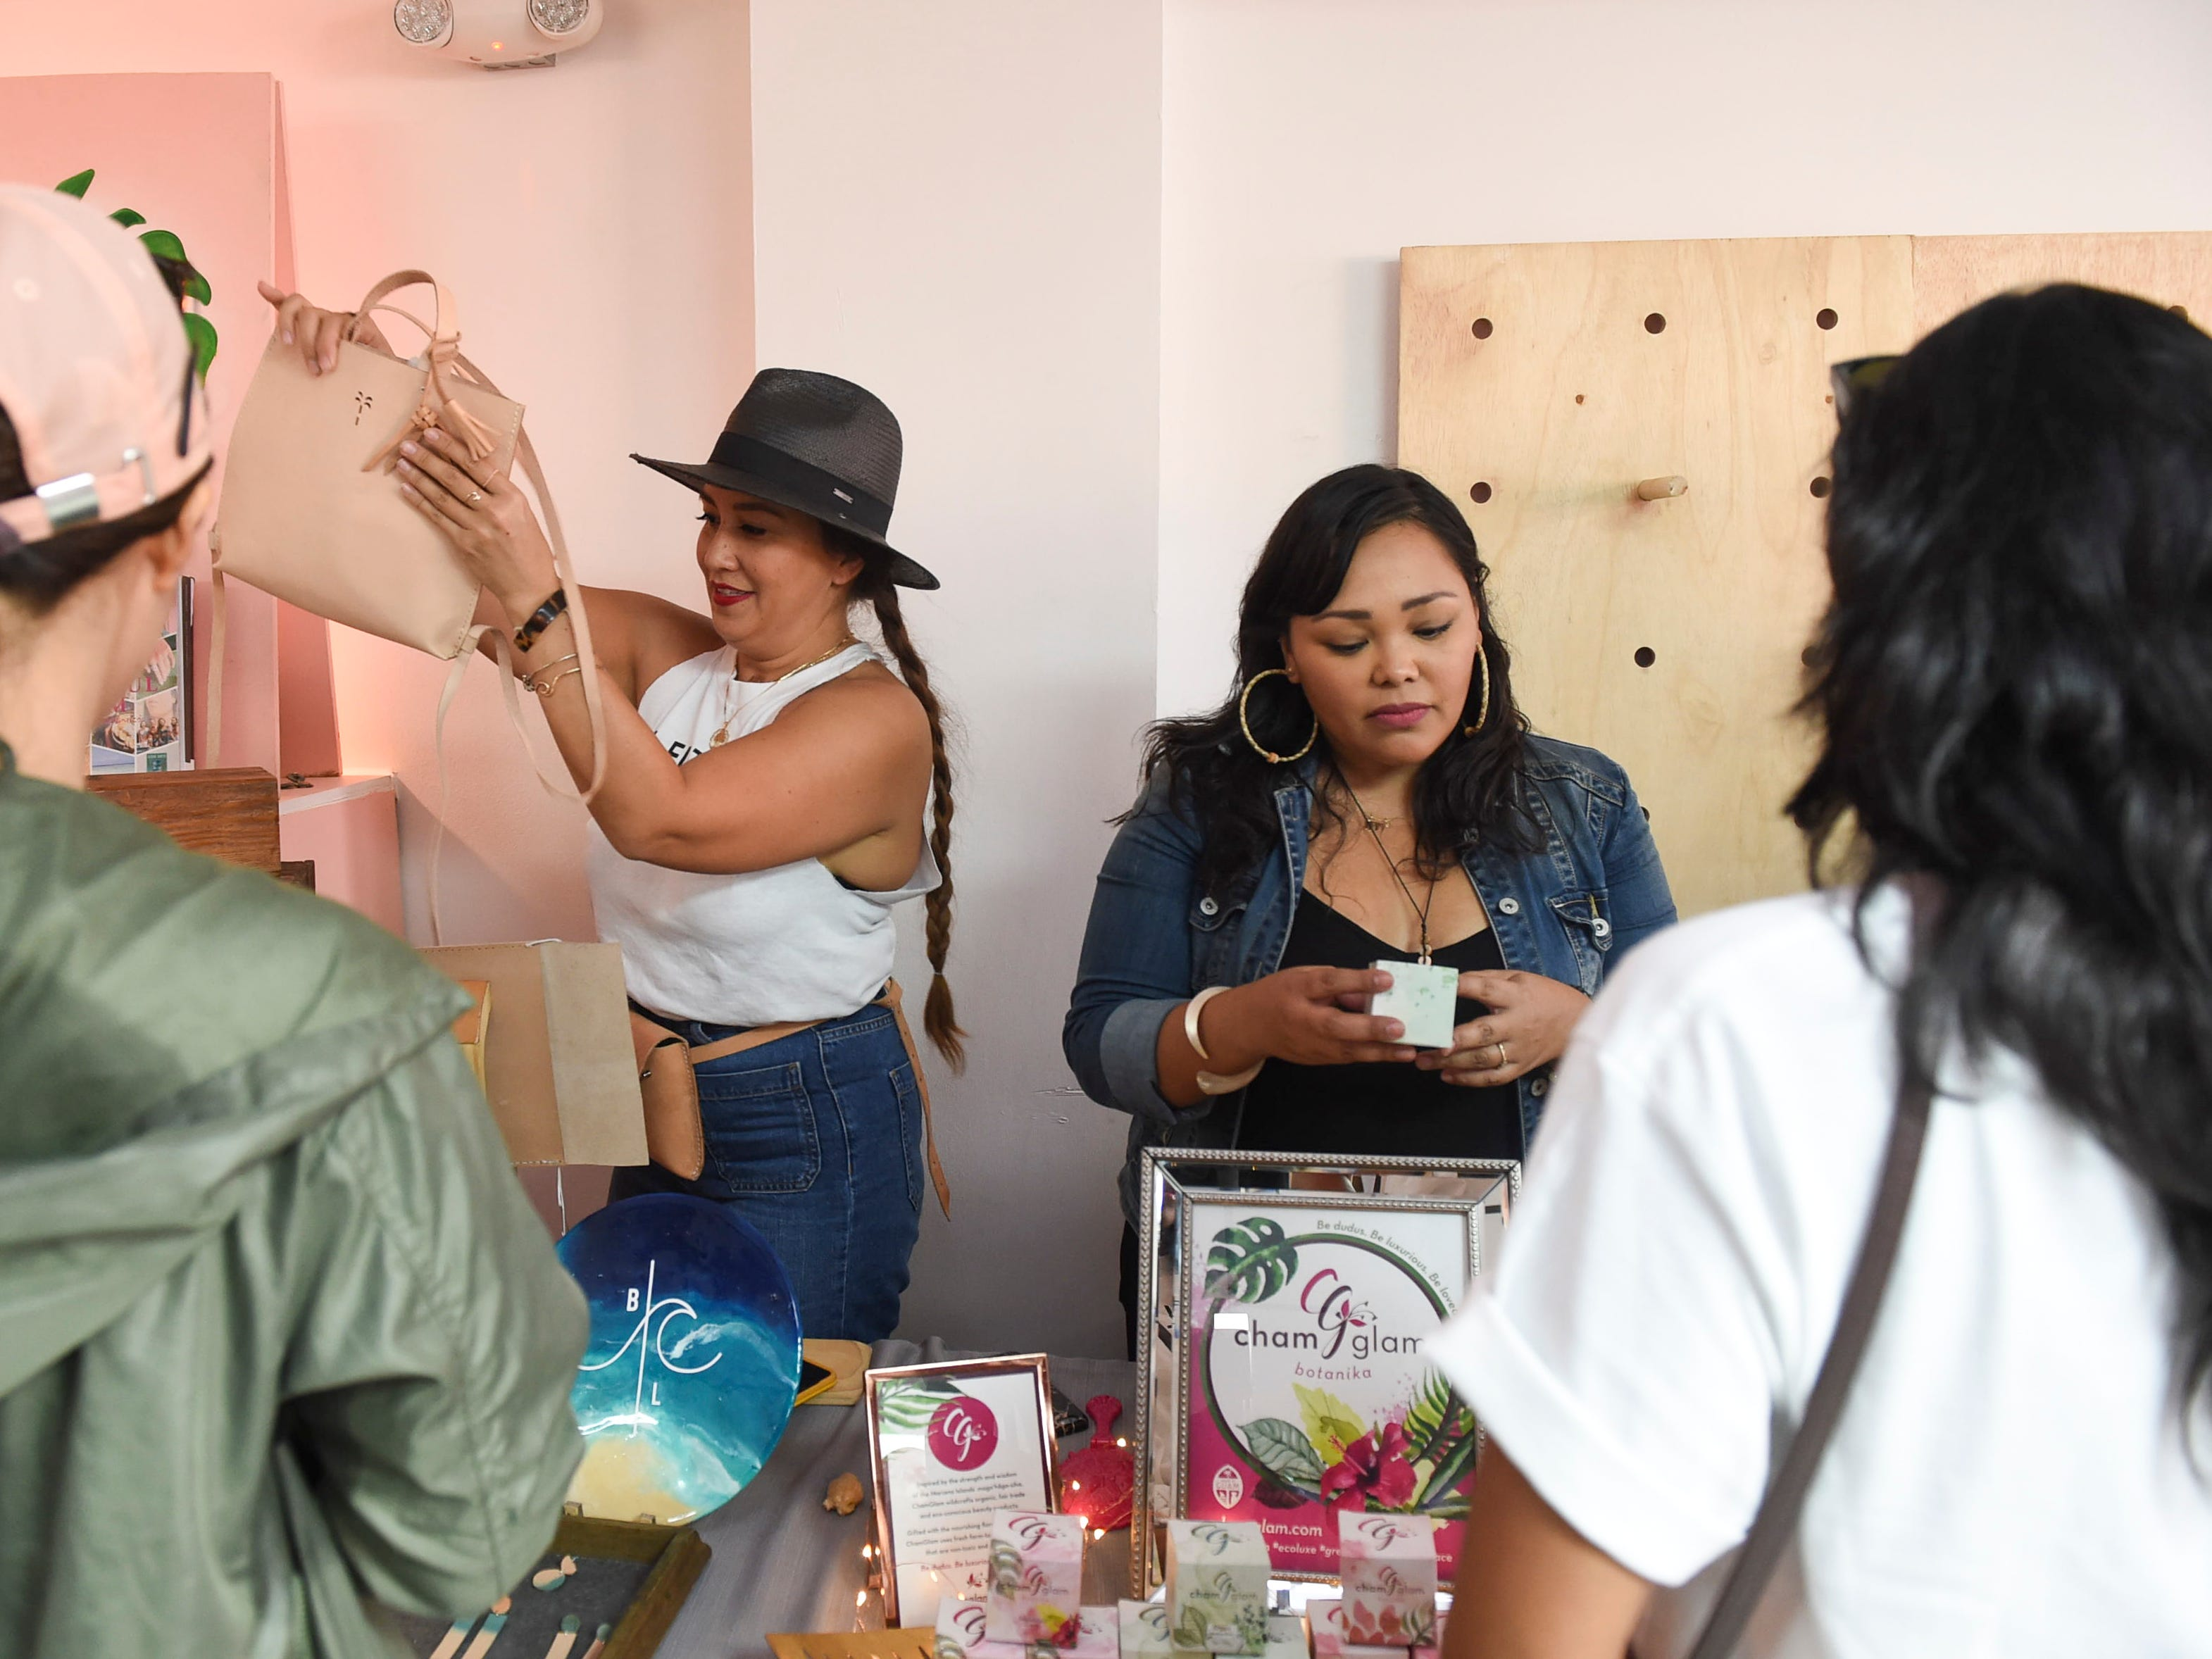 A launch party featuring locally-owned small business vendors, music entertainment, and guided meditation is held for women's group, Maga'håga Rising, at Sundays Guam in Tumon, Jan. 13, 2018.